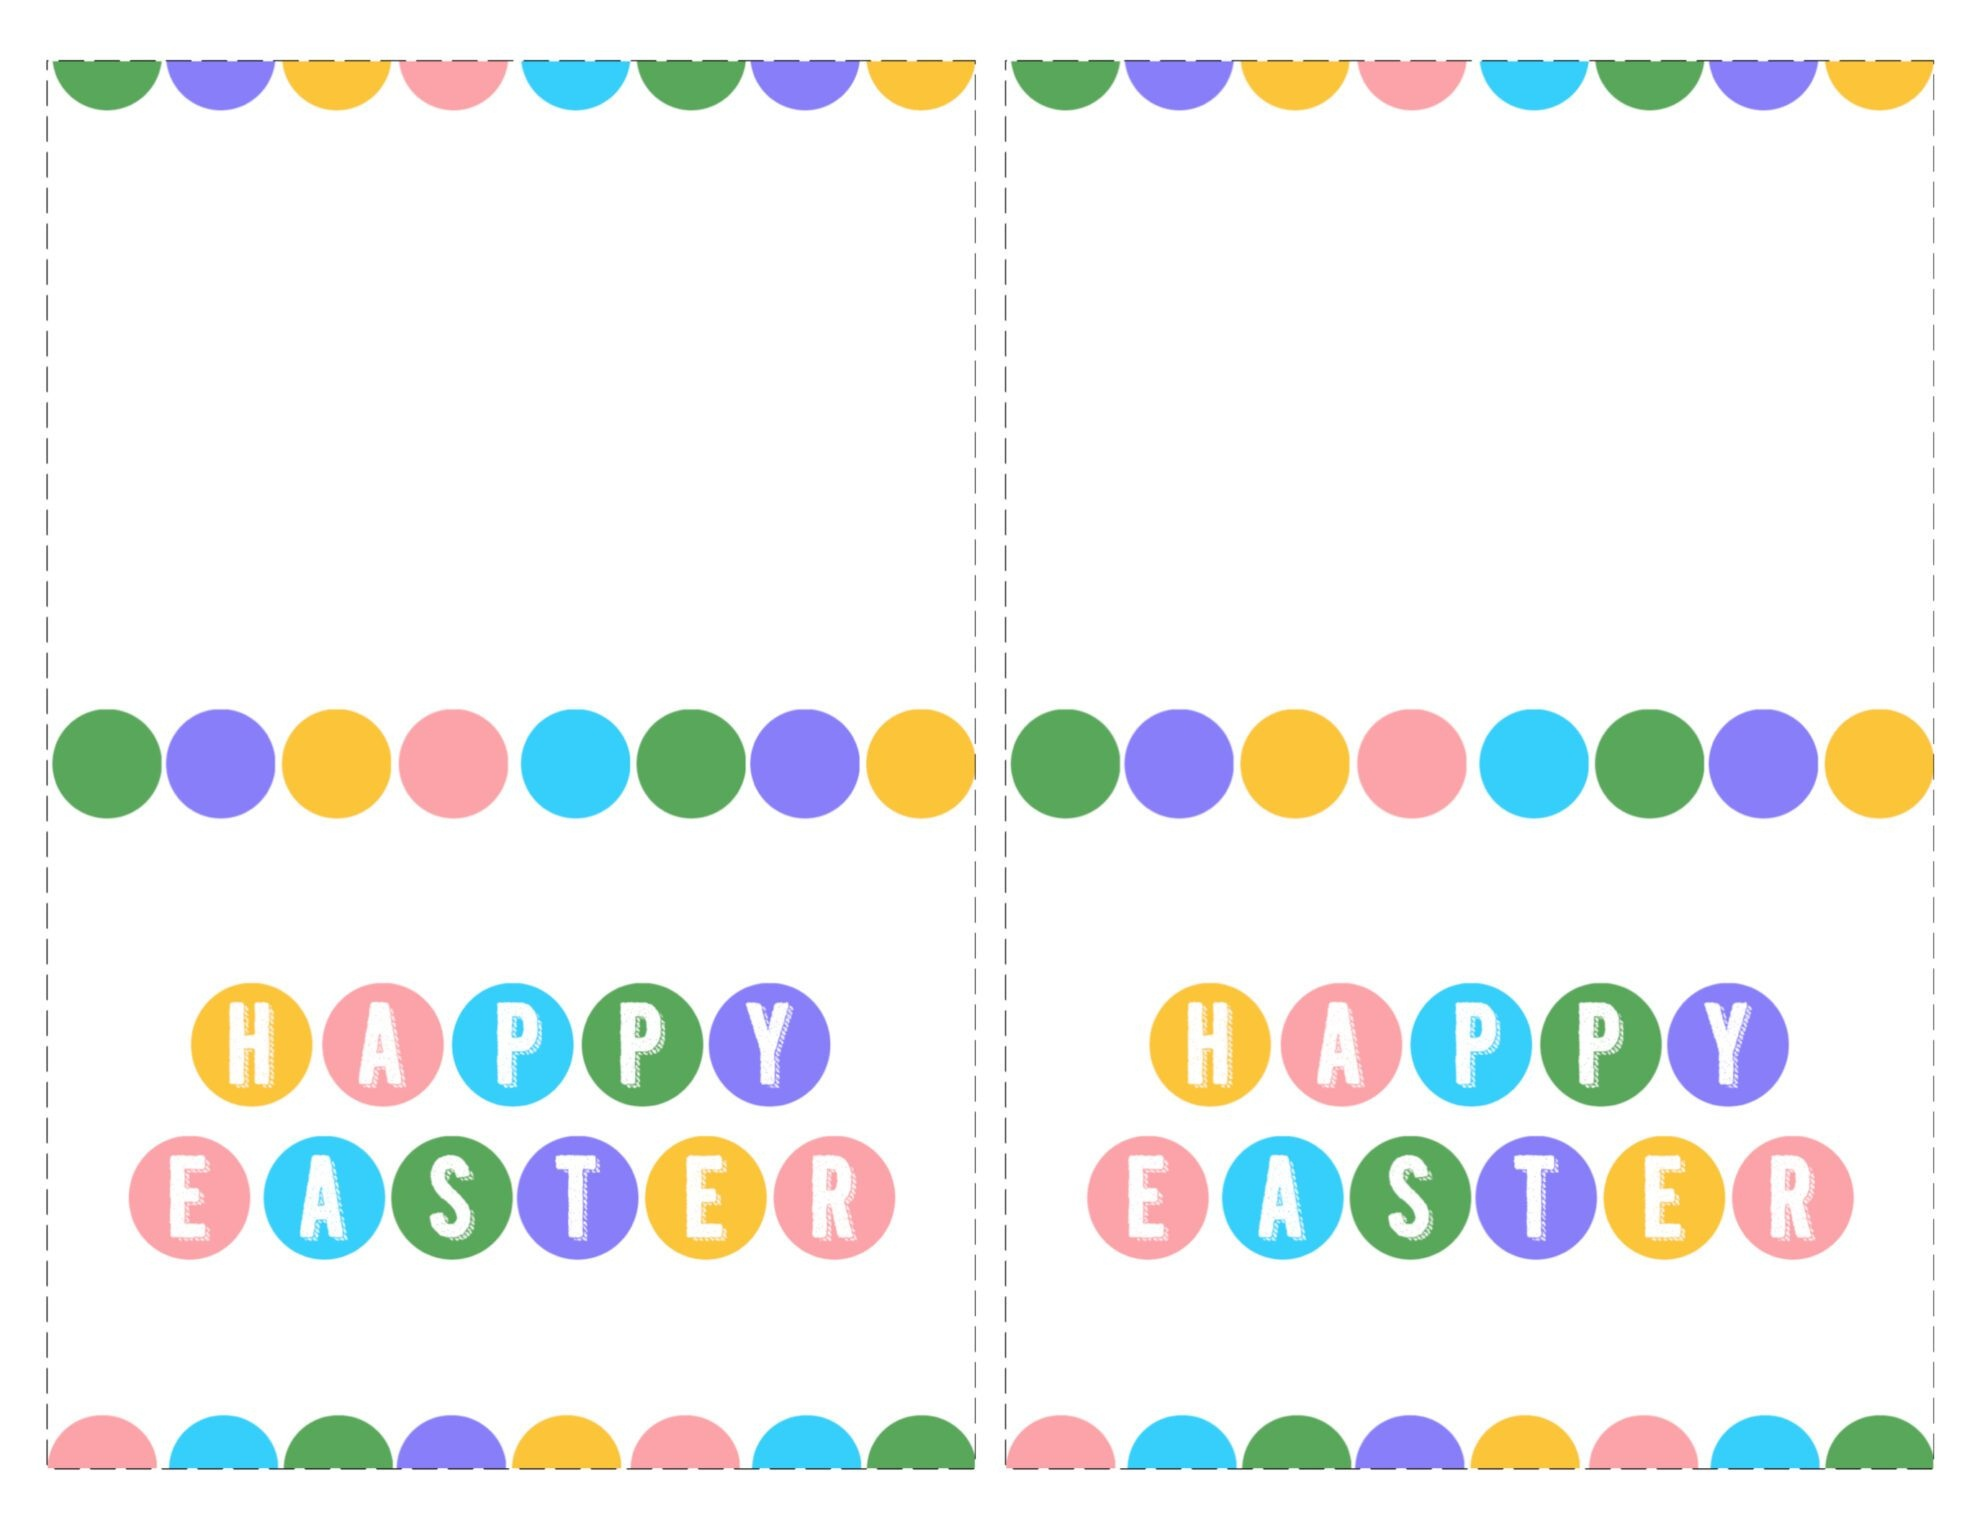 Happy Easter Cards Printable - Free - Paper Trail Design - Free Printable Easter Cards